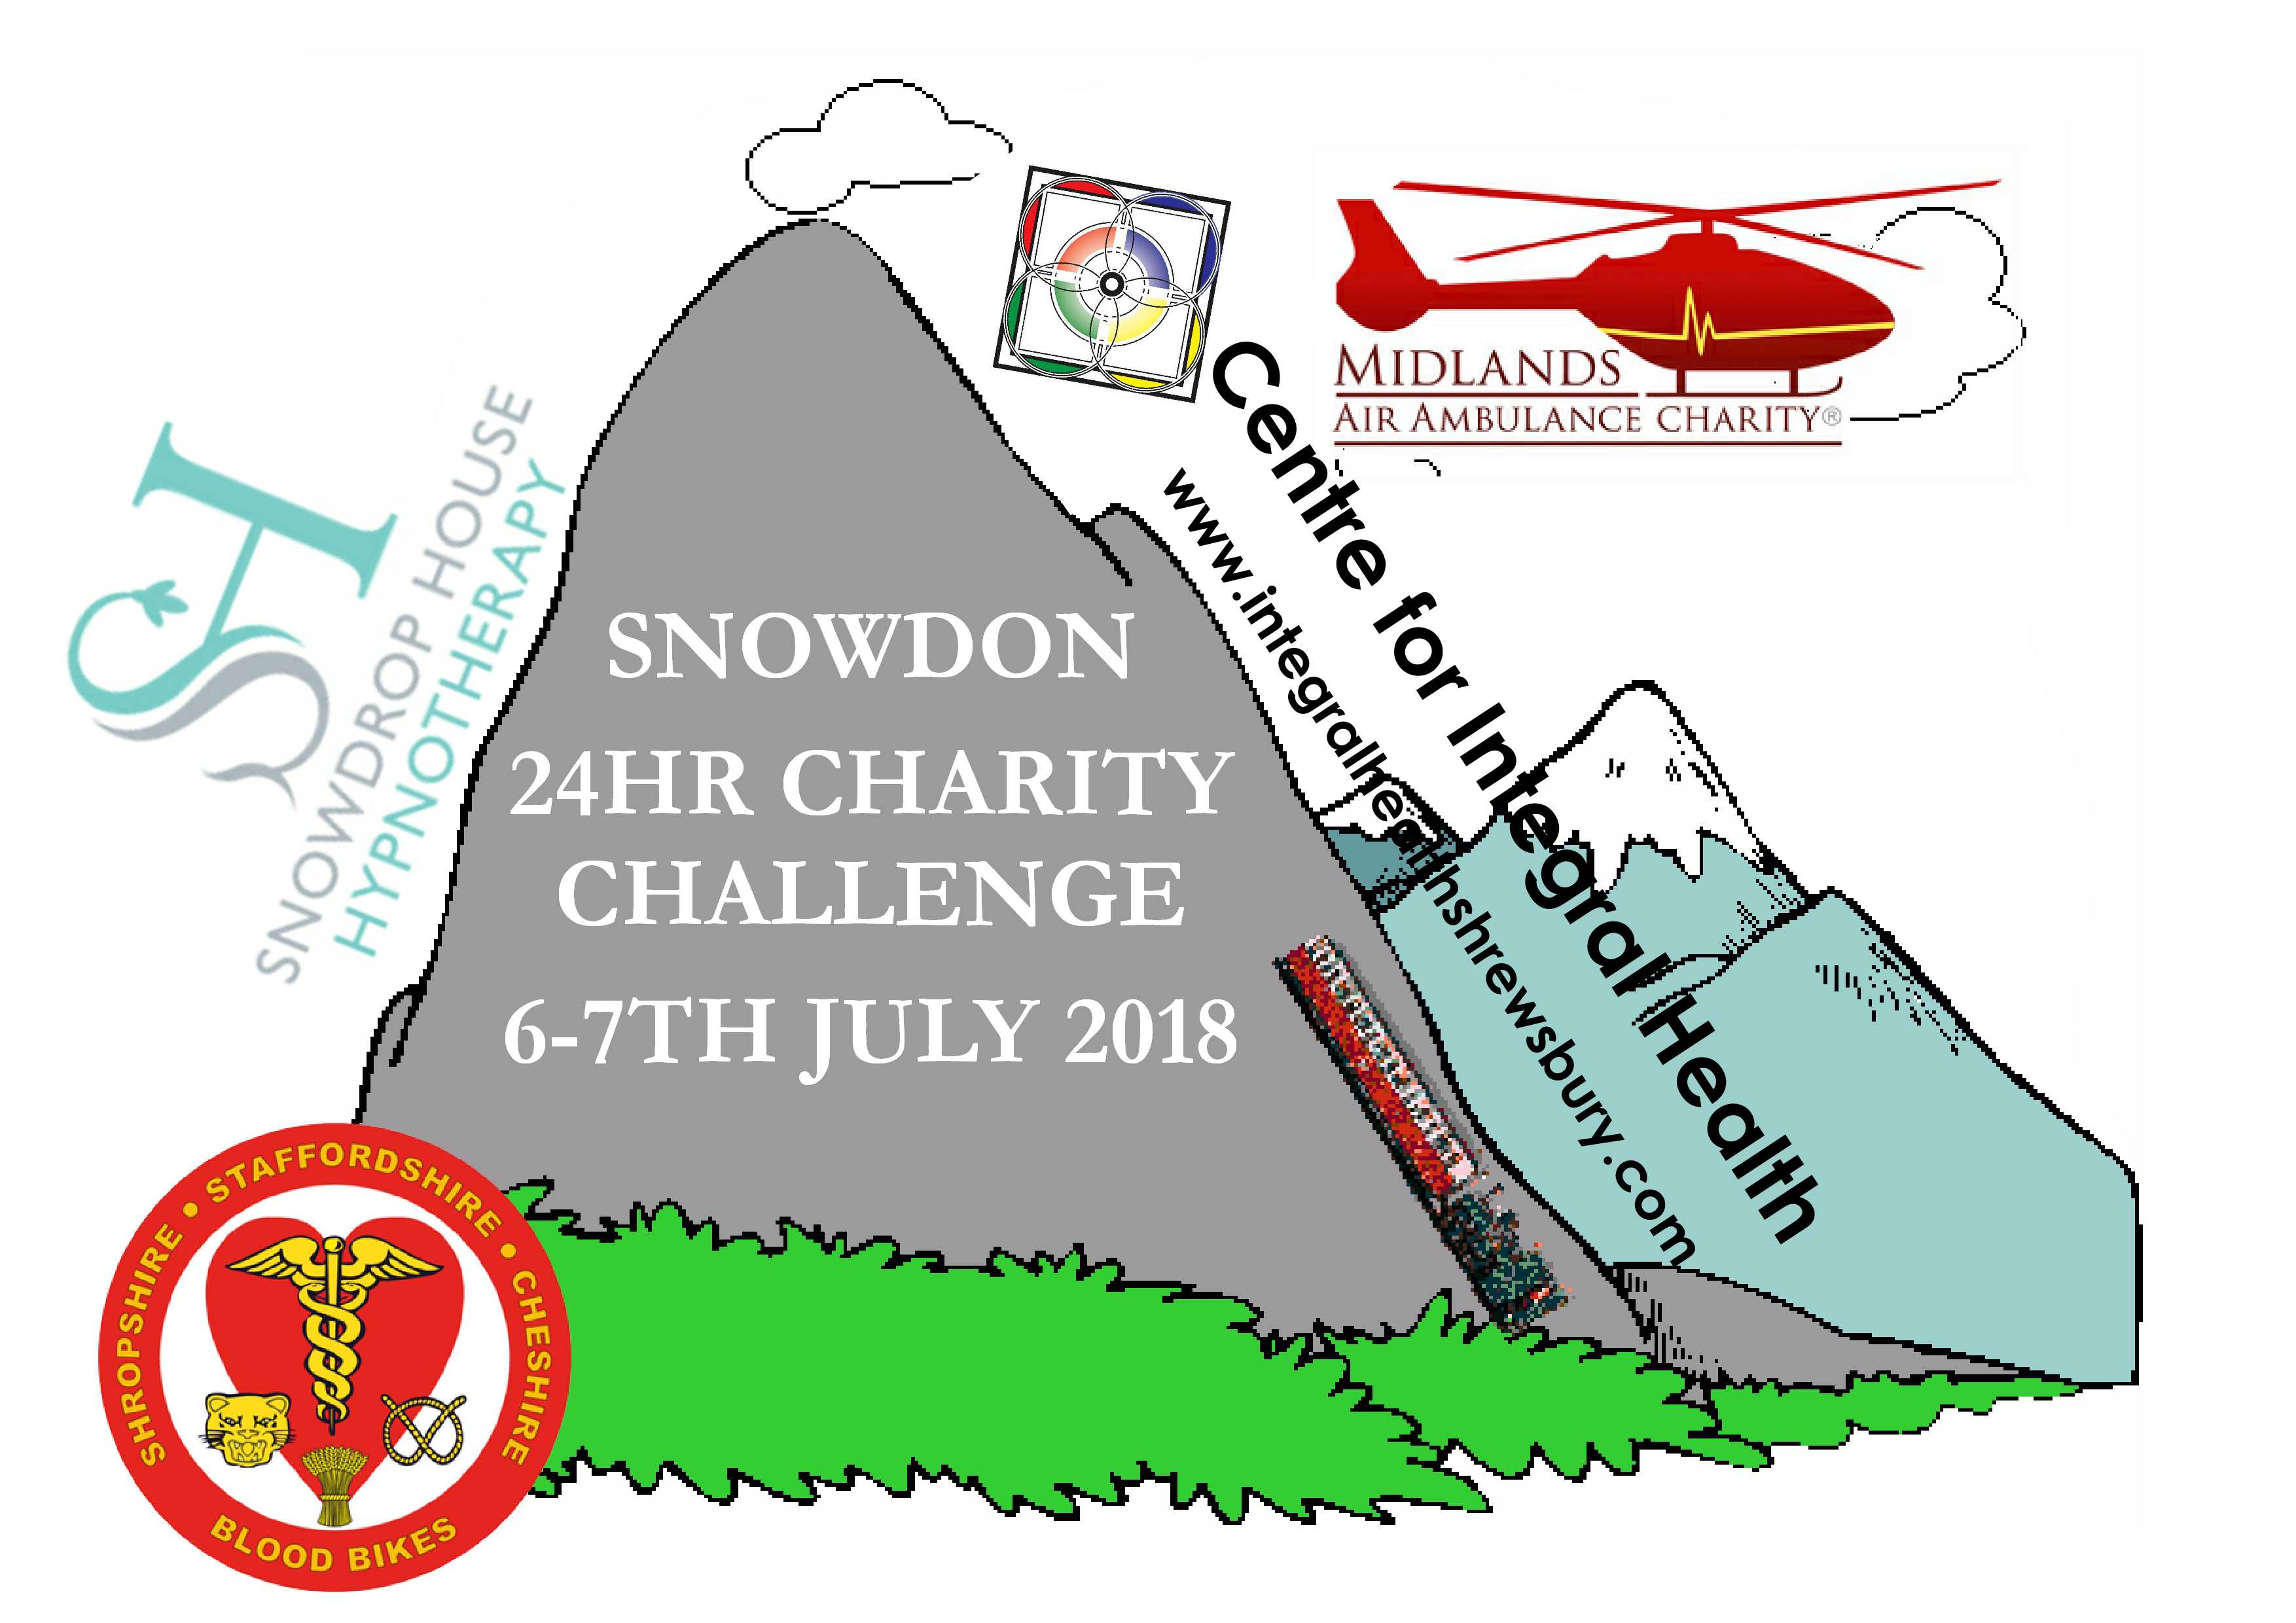 Centre for Integral Health Fundraising For Midlands Air Ambulance & Blood Bikes in there 24hr Snowdon Challenge